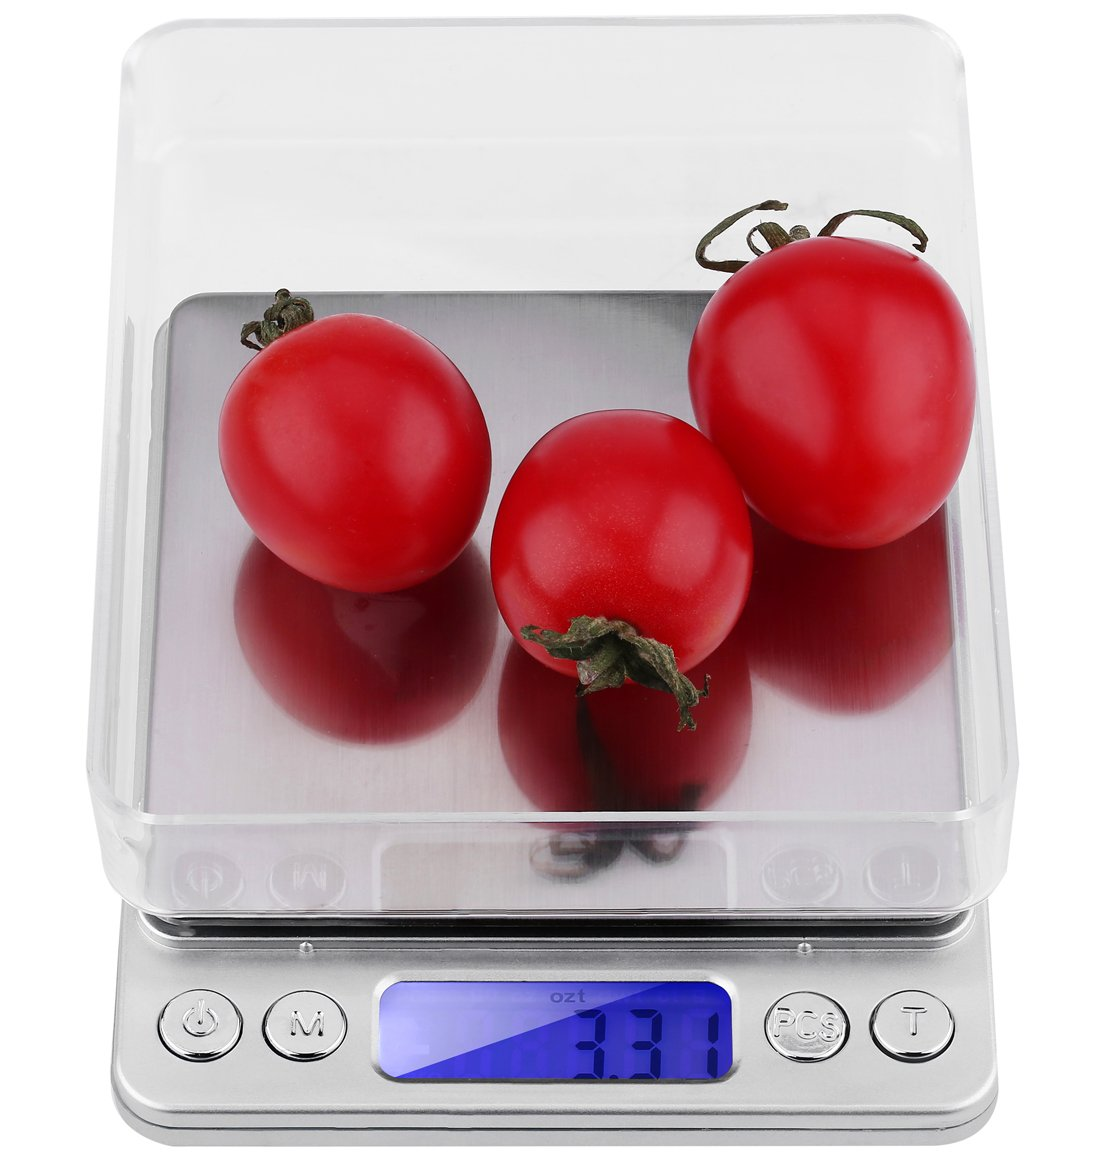 ks 486 multifunction digital kitchen food scale best digital scales